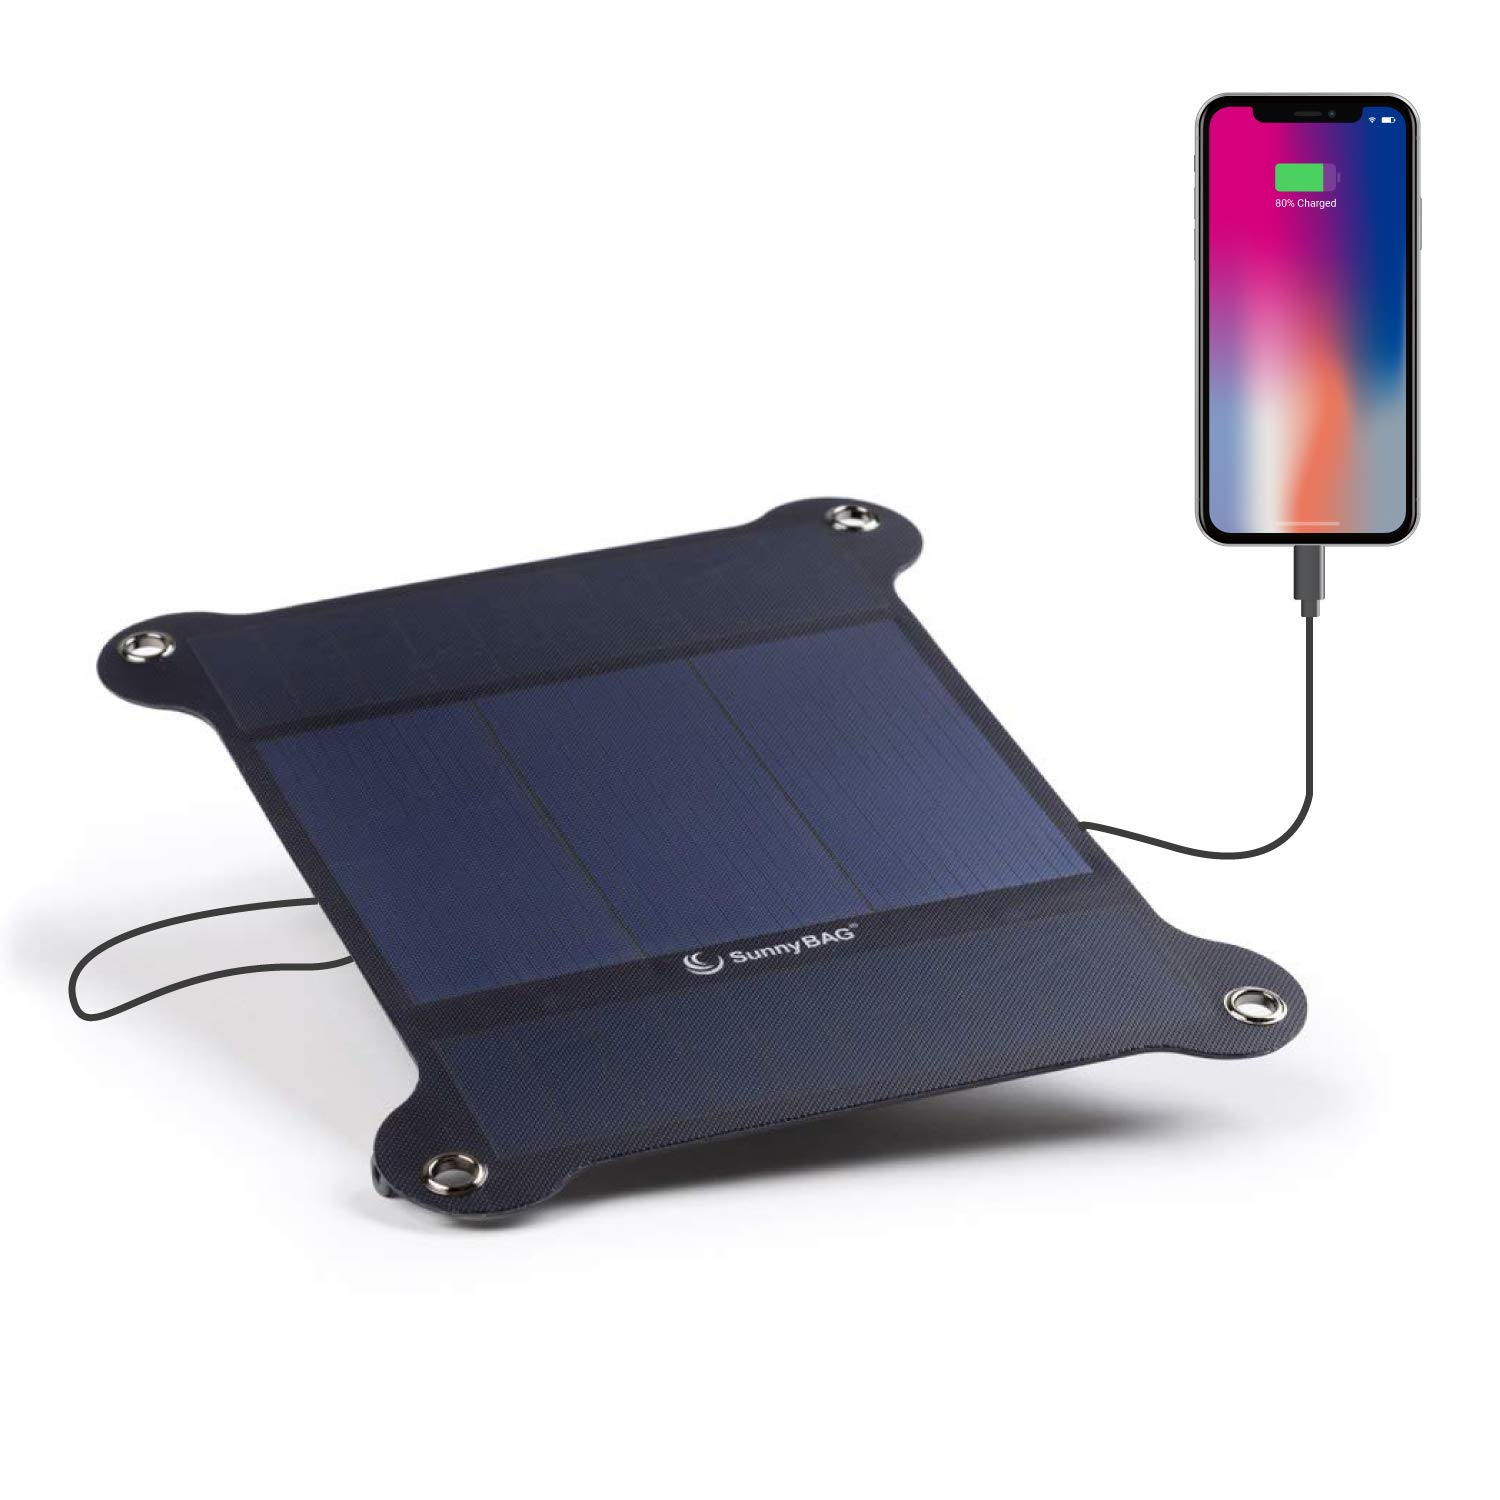 Sunnybag Leaf+ | Premium Outdoor Solar Charger for All Smartphones, Tablets and More Incl. 10.000 mAh Power Bank | The World's Lightest and Strongest Flexible Solar Panel by SUNNYBAG